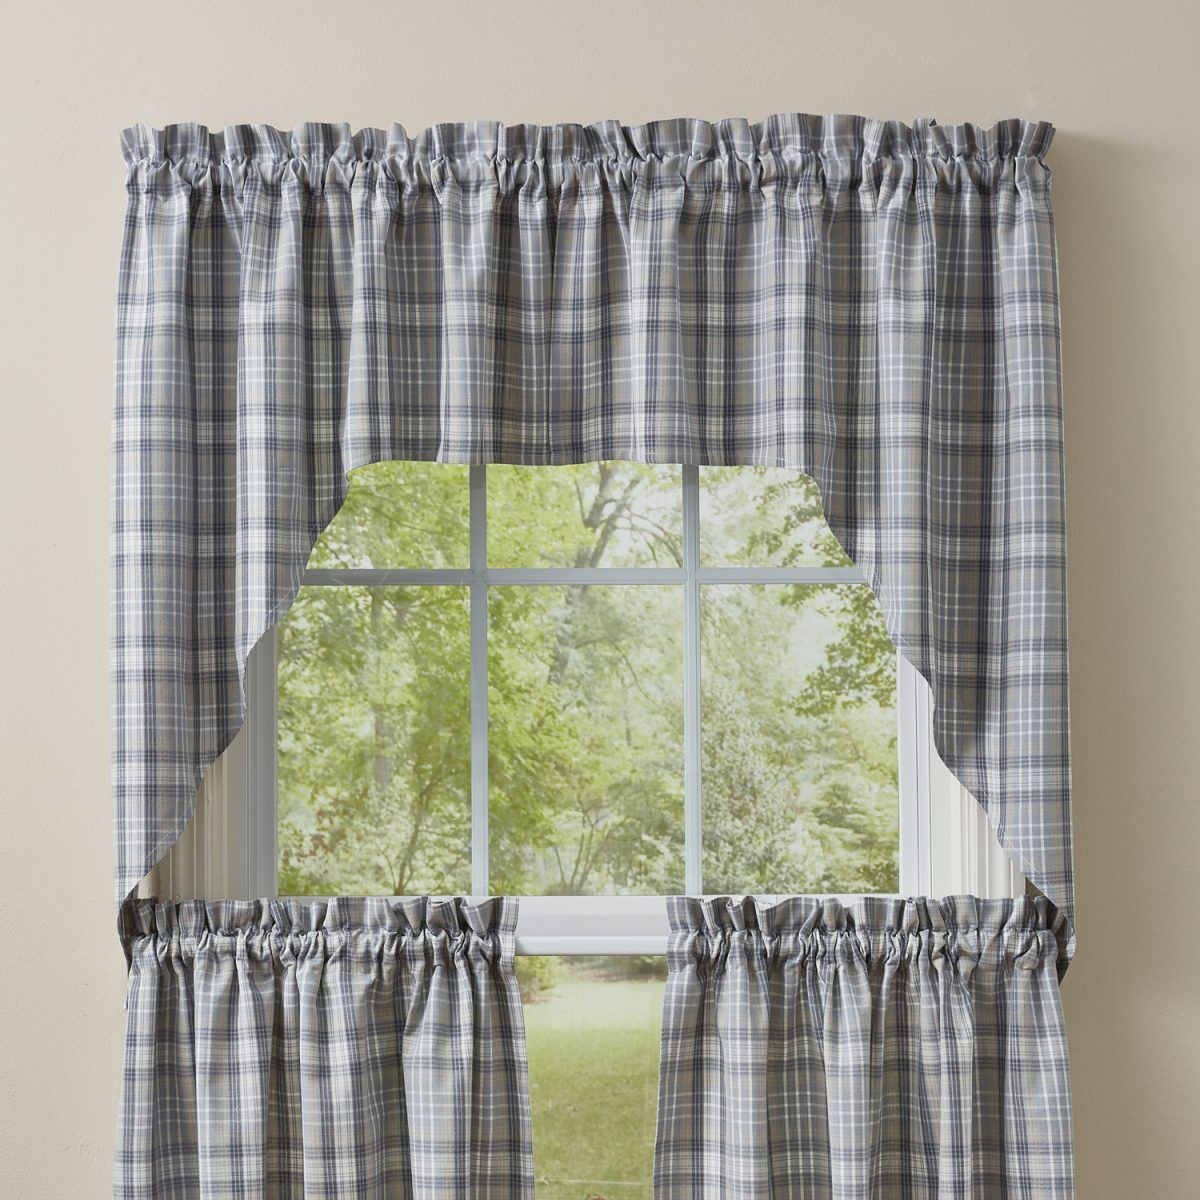 Hartwick Swags Farmhouse Curtains Curtains Hartwick